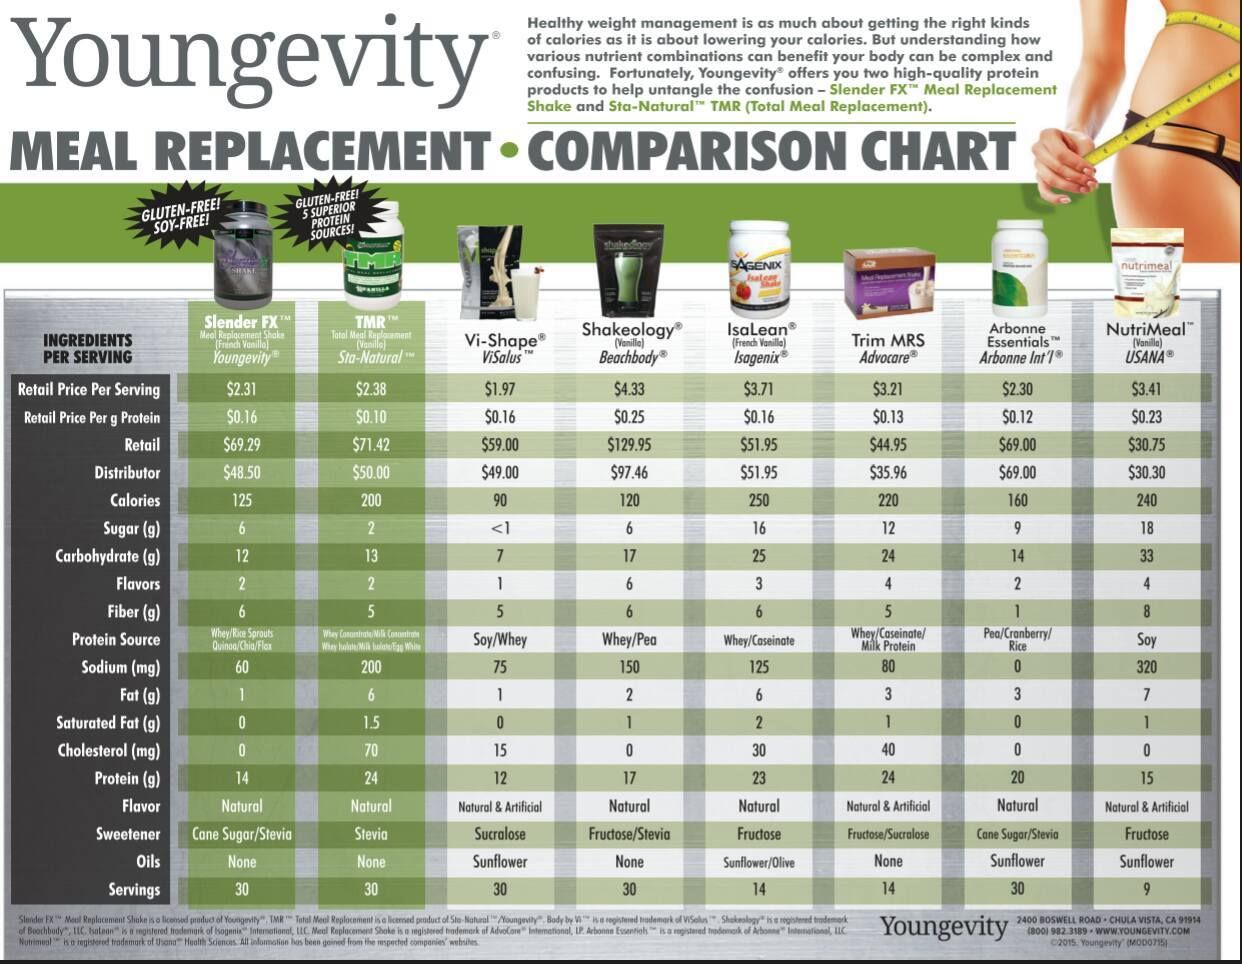 Shake Comparison Chart Healthy Weight Management Slender Fx Meal Replacement And Sta